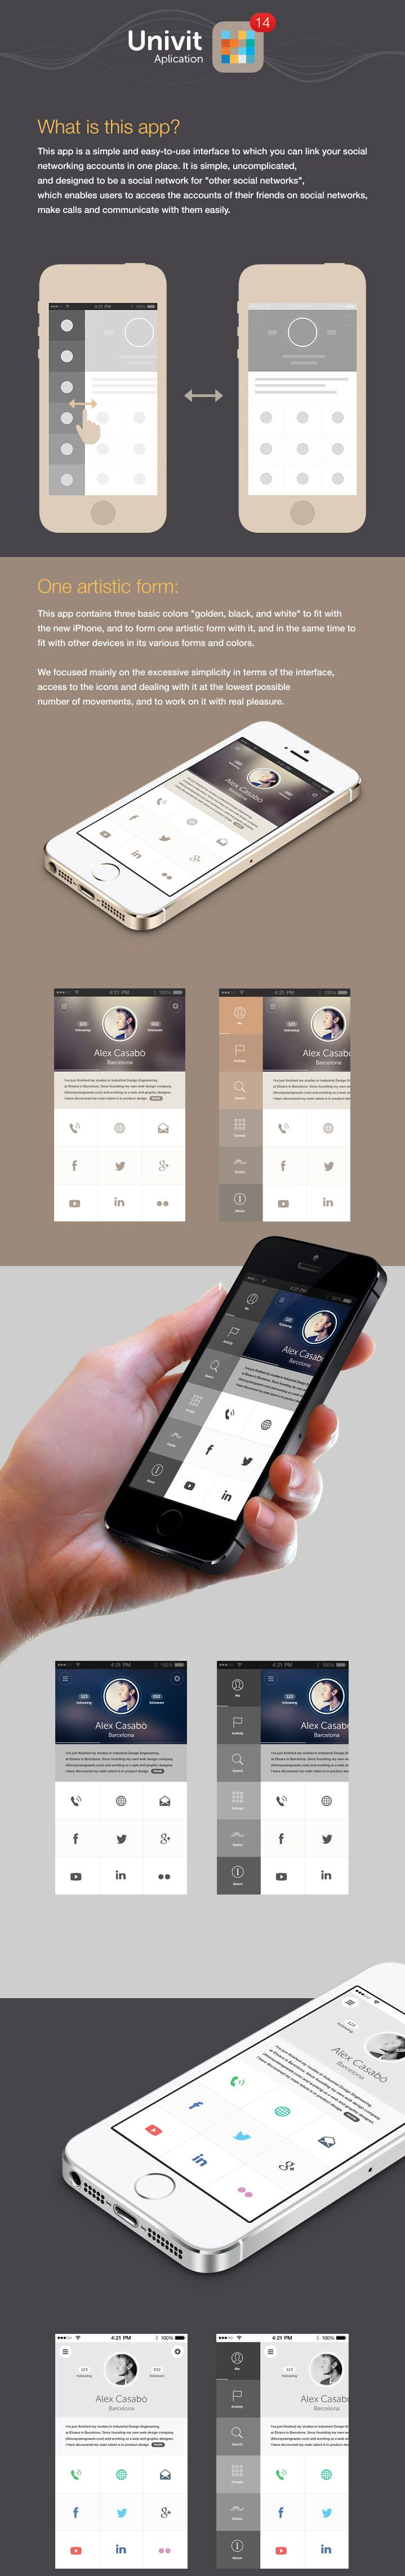 #app #design inspiration / layout  description